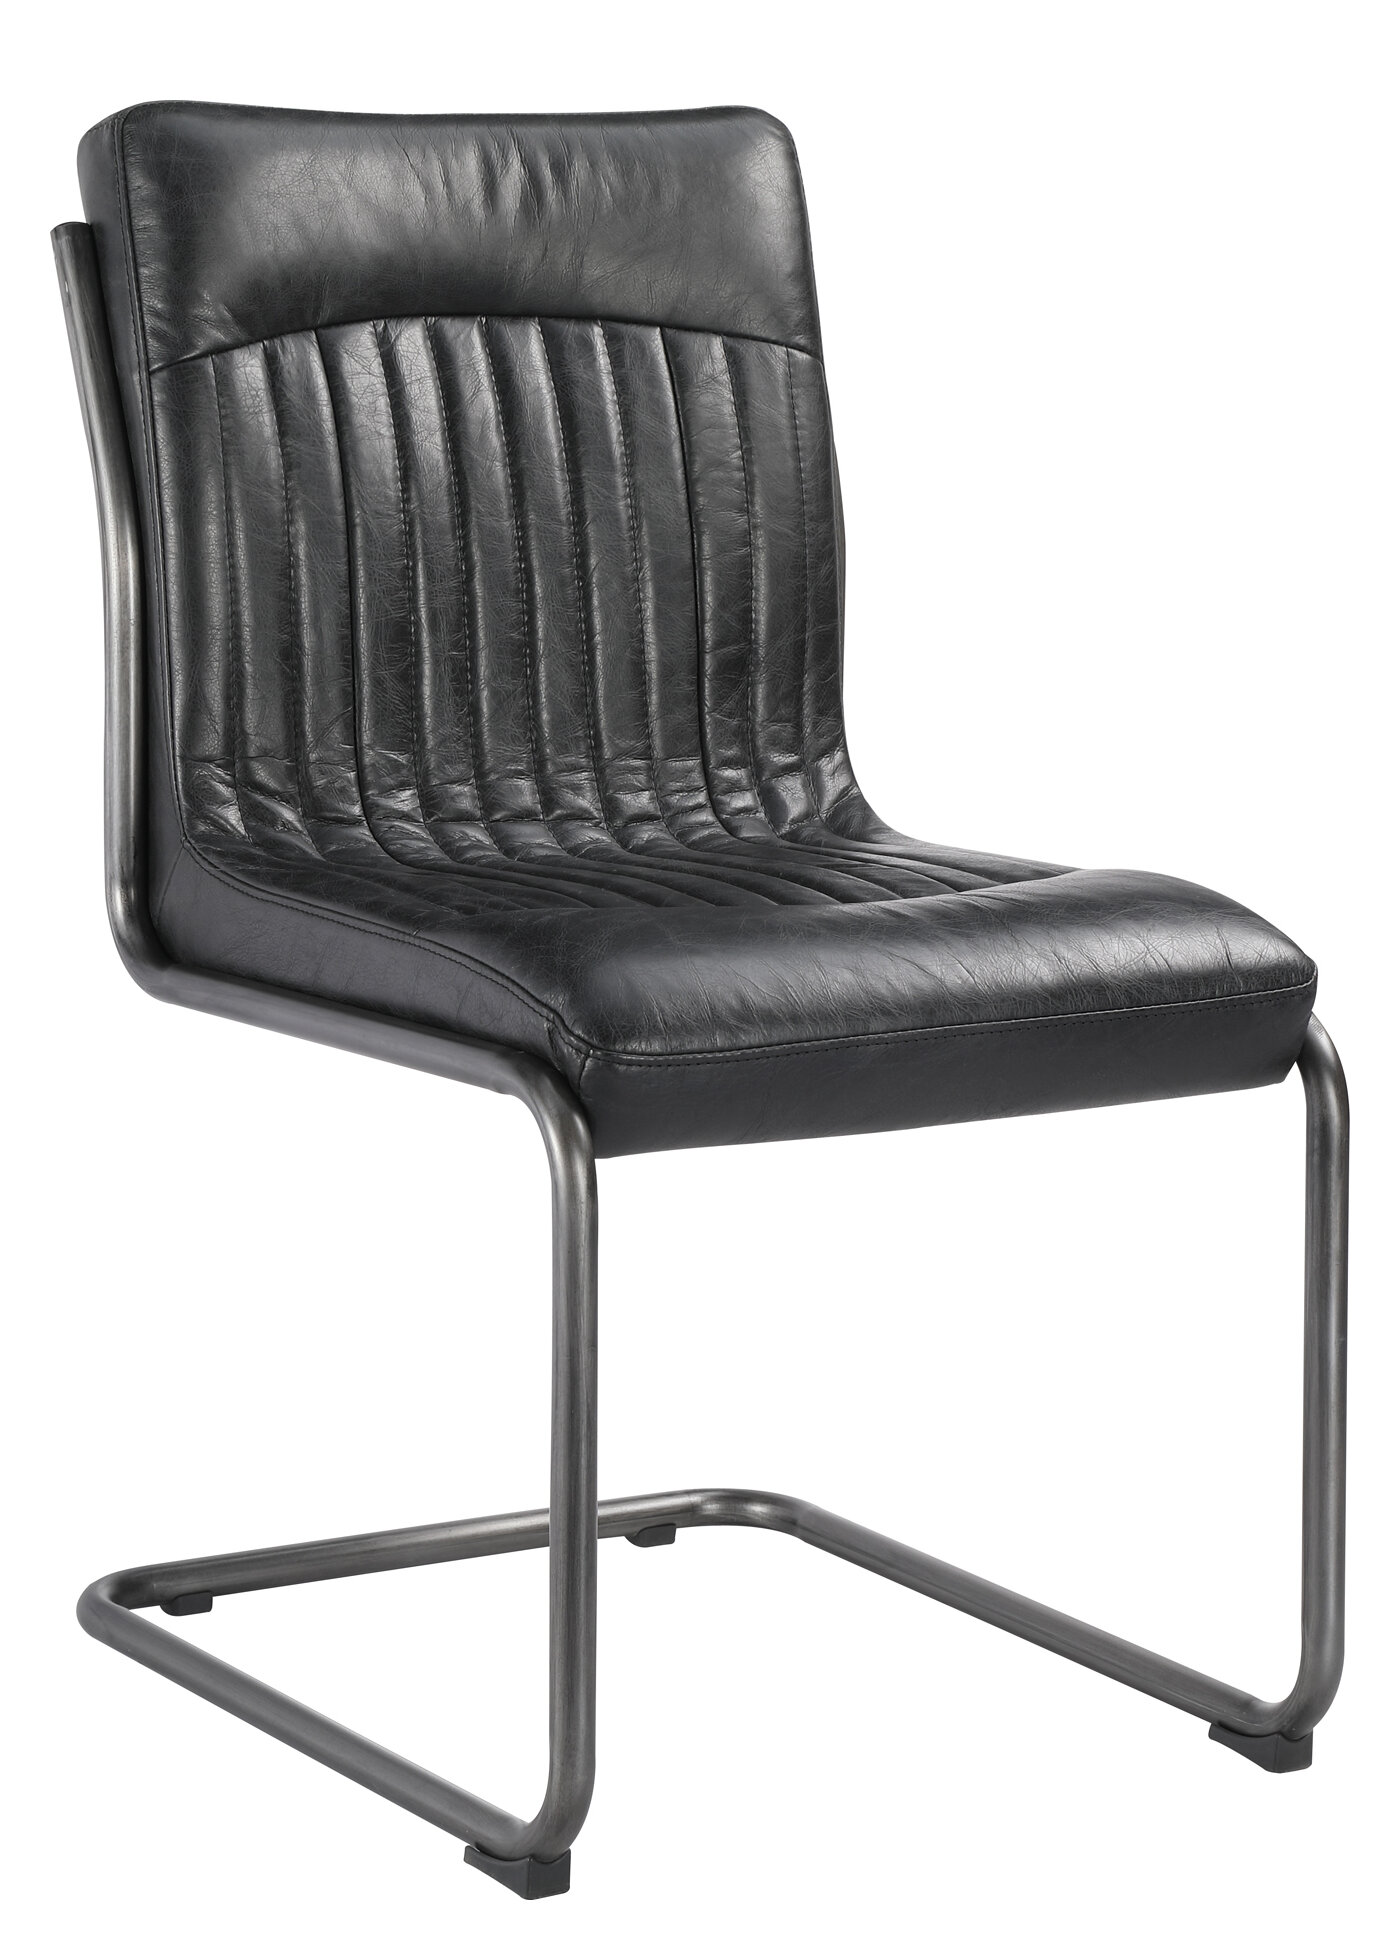 Williston Forge Dublin Genuine Leather Upholstered Dining Chair Wayfair